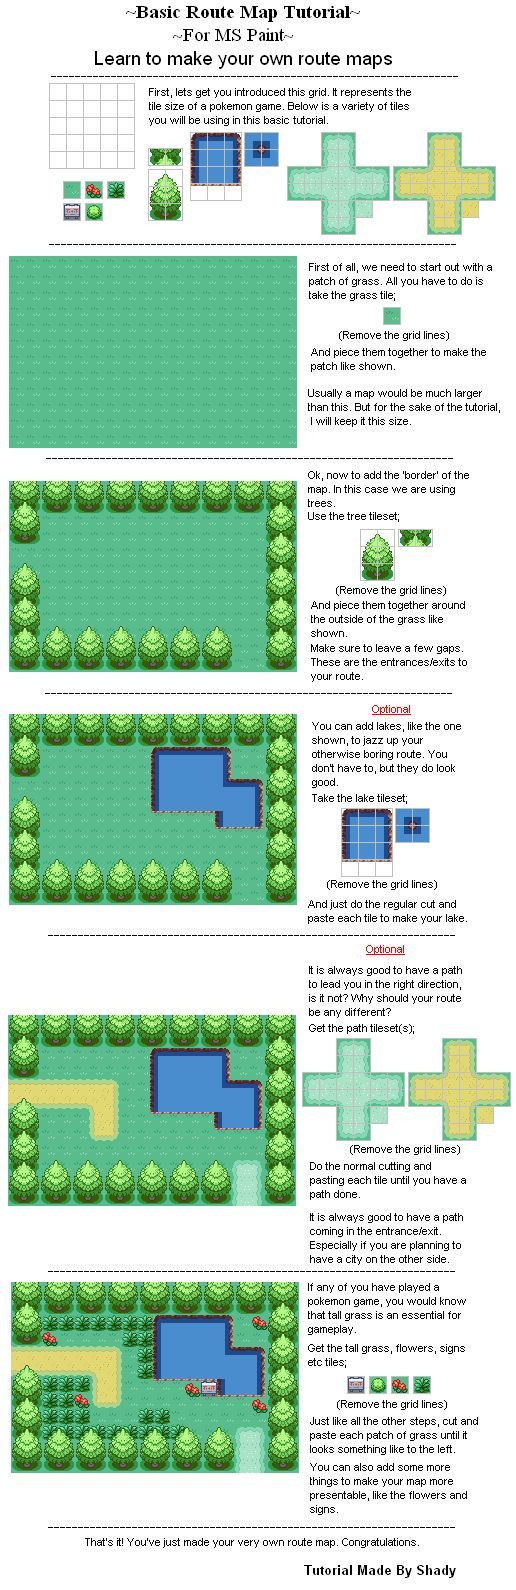 Route Map Tutorial: